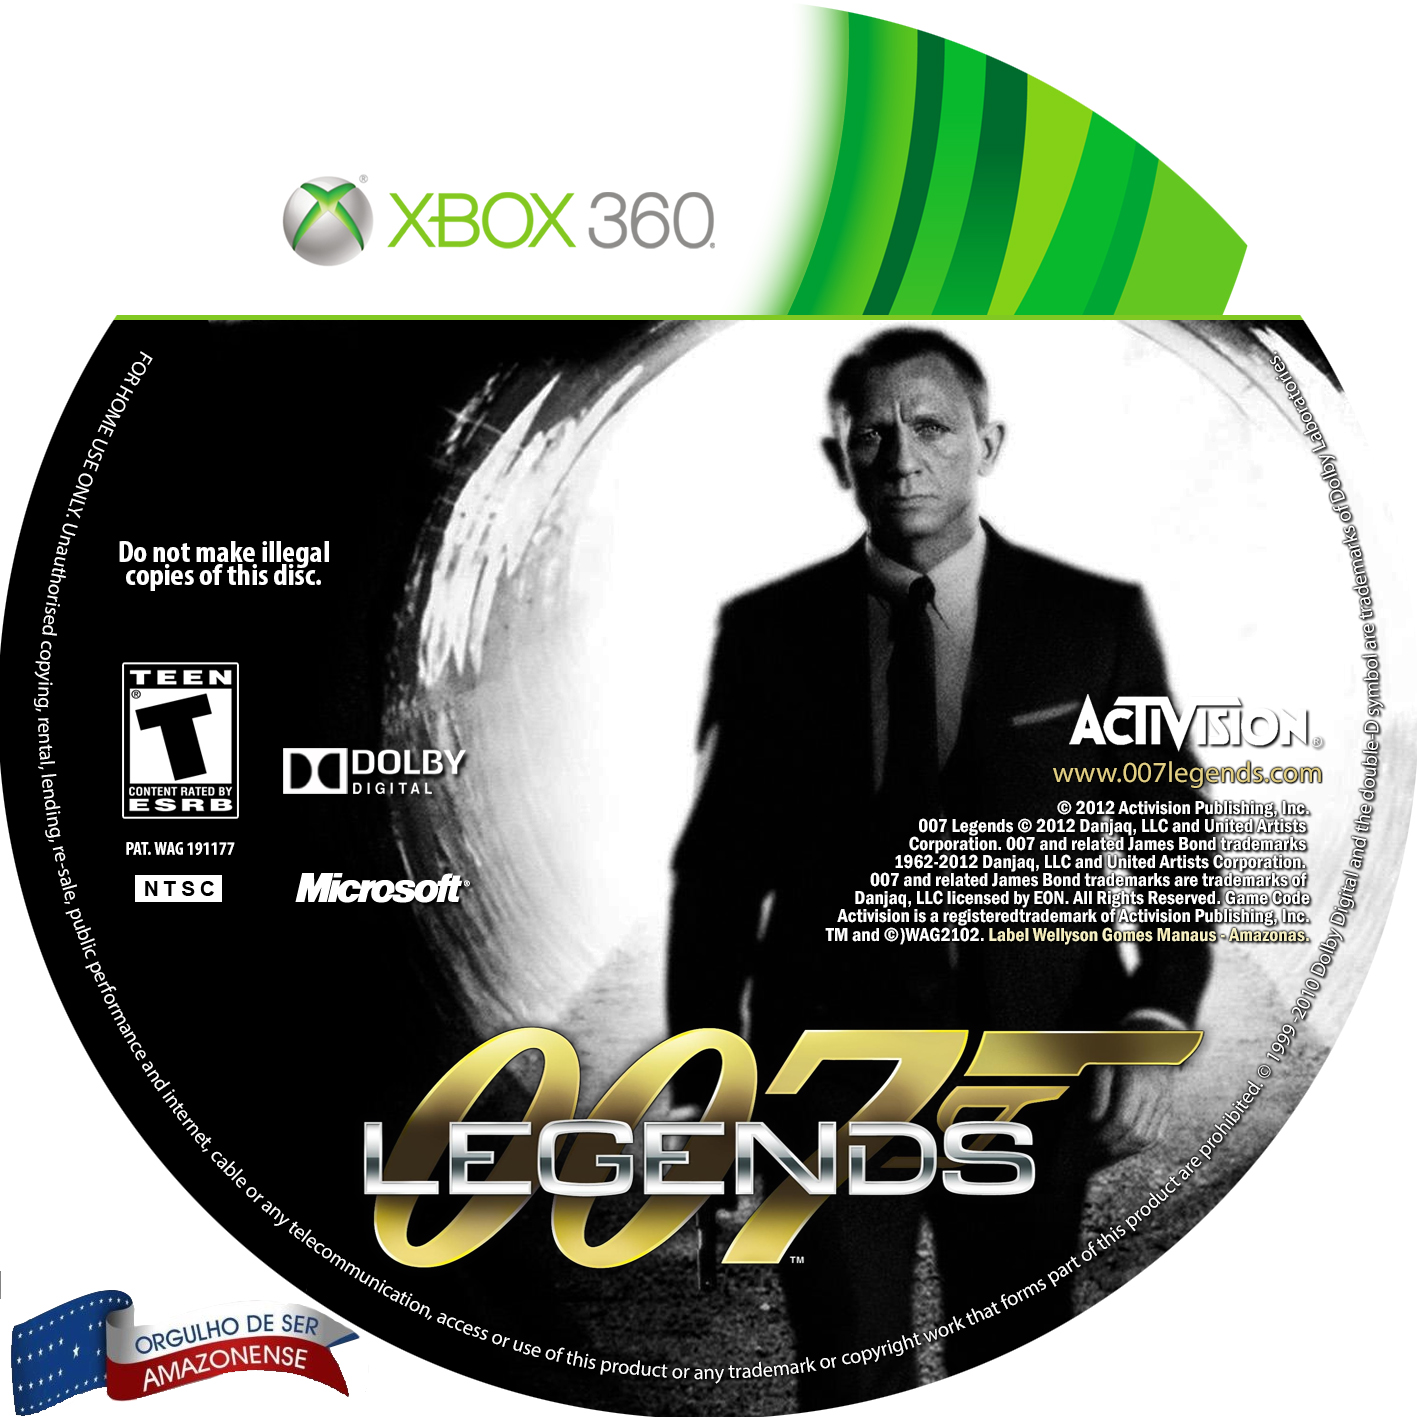 how to play torrent downloaded xbox 360 games